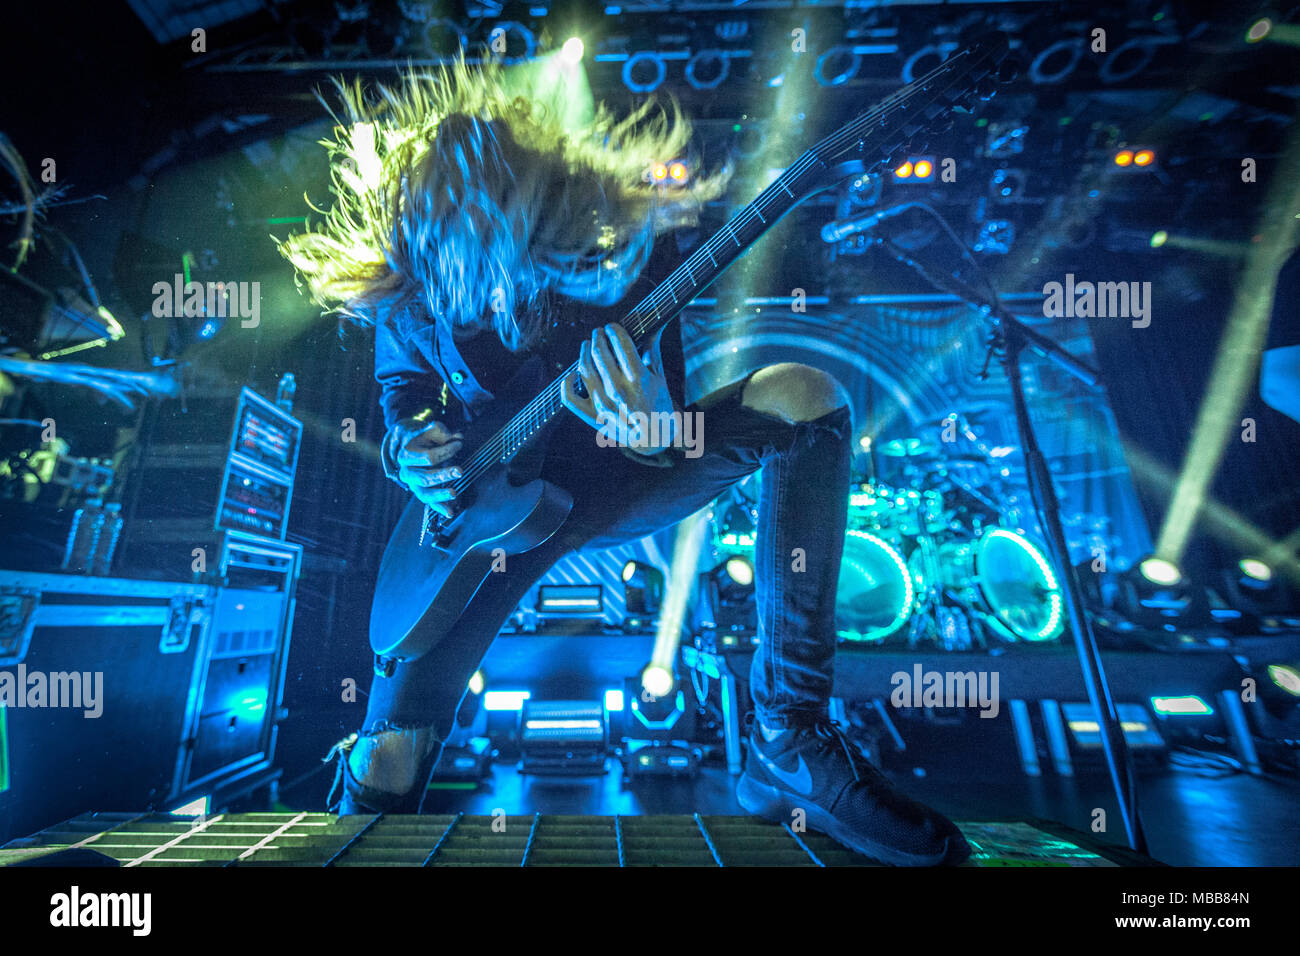 Copenhagen, Denmark. 9th Apr, 2018. The American metalcore band Of Mice and Men performs a live concert at Pumpehuset in Copenhagen. Here guitarist Alan Ashby is seen live on stage. (Photo credit: Gonzales Photo - Thomas Rasmussen). Credit: Gonzales Photo/Alamy Live News - Stock Image